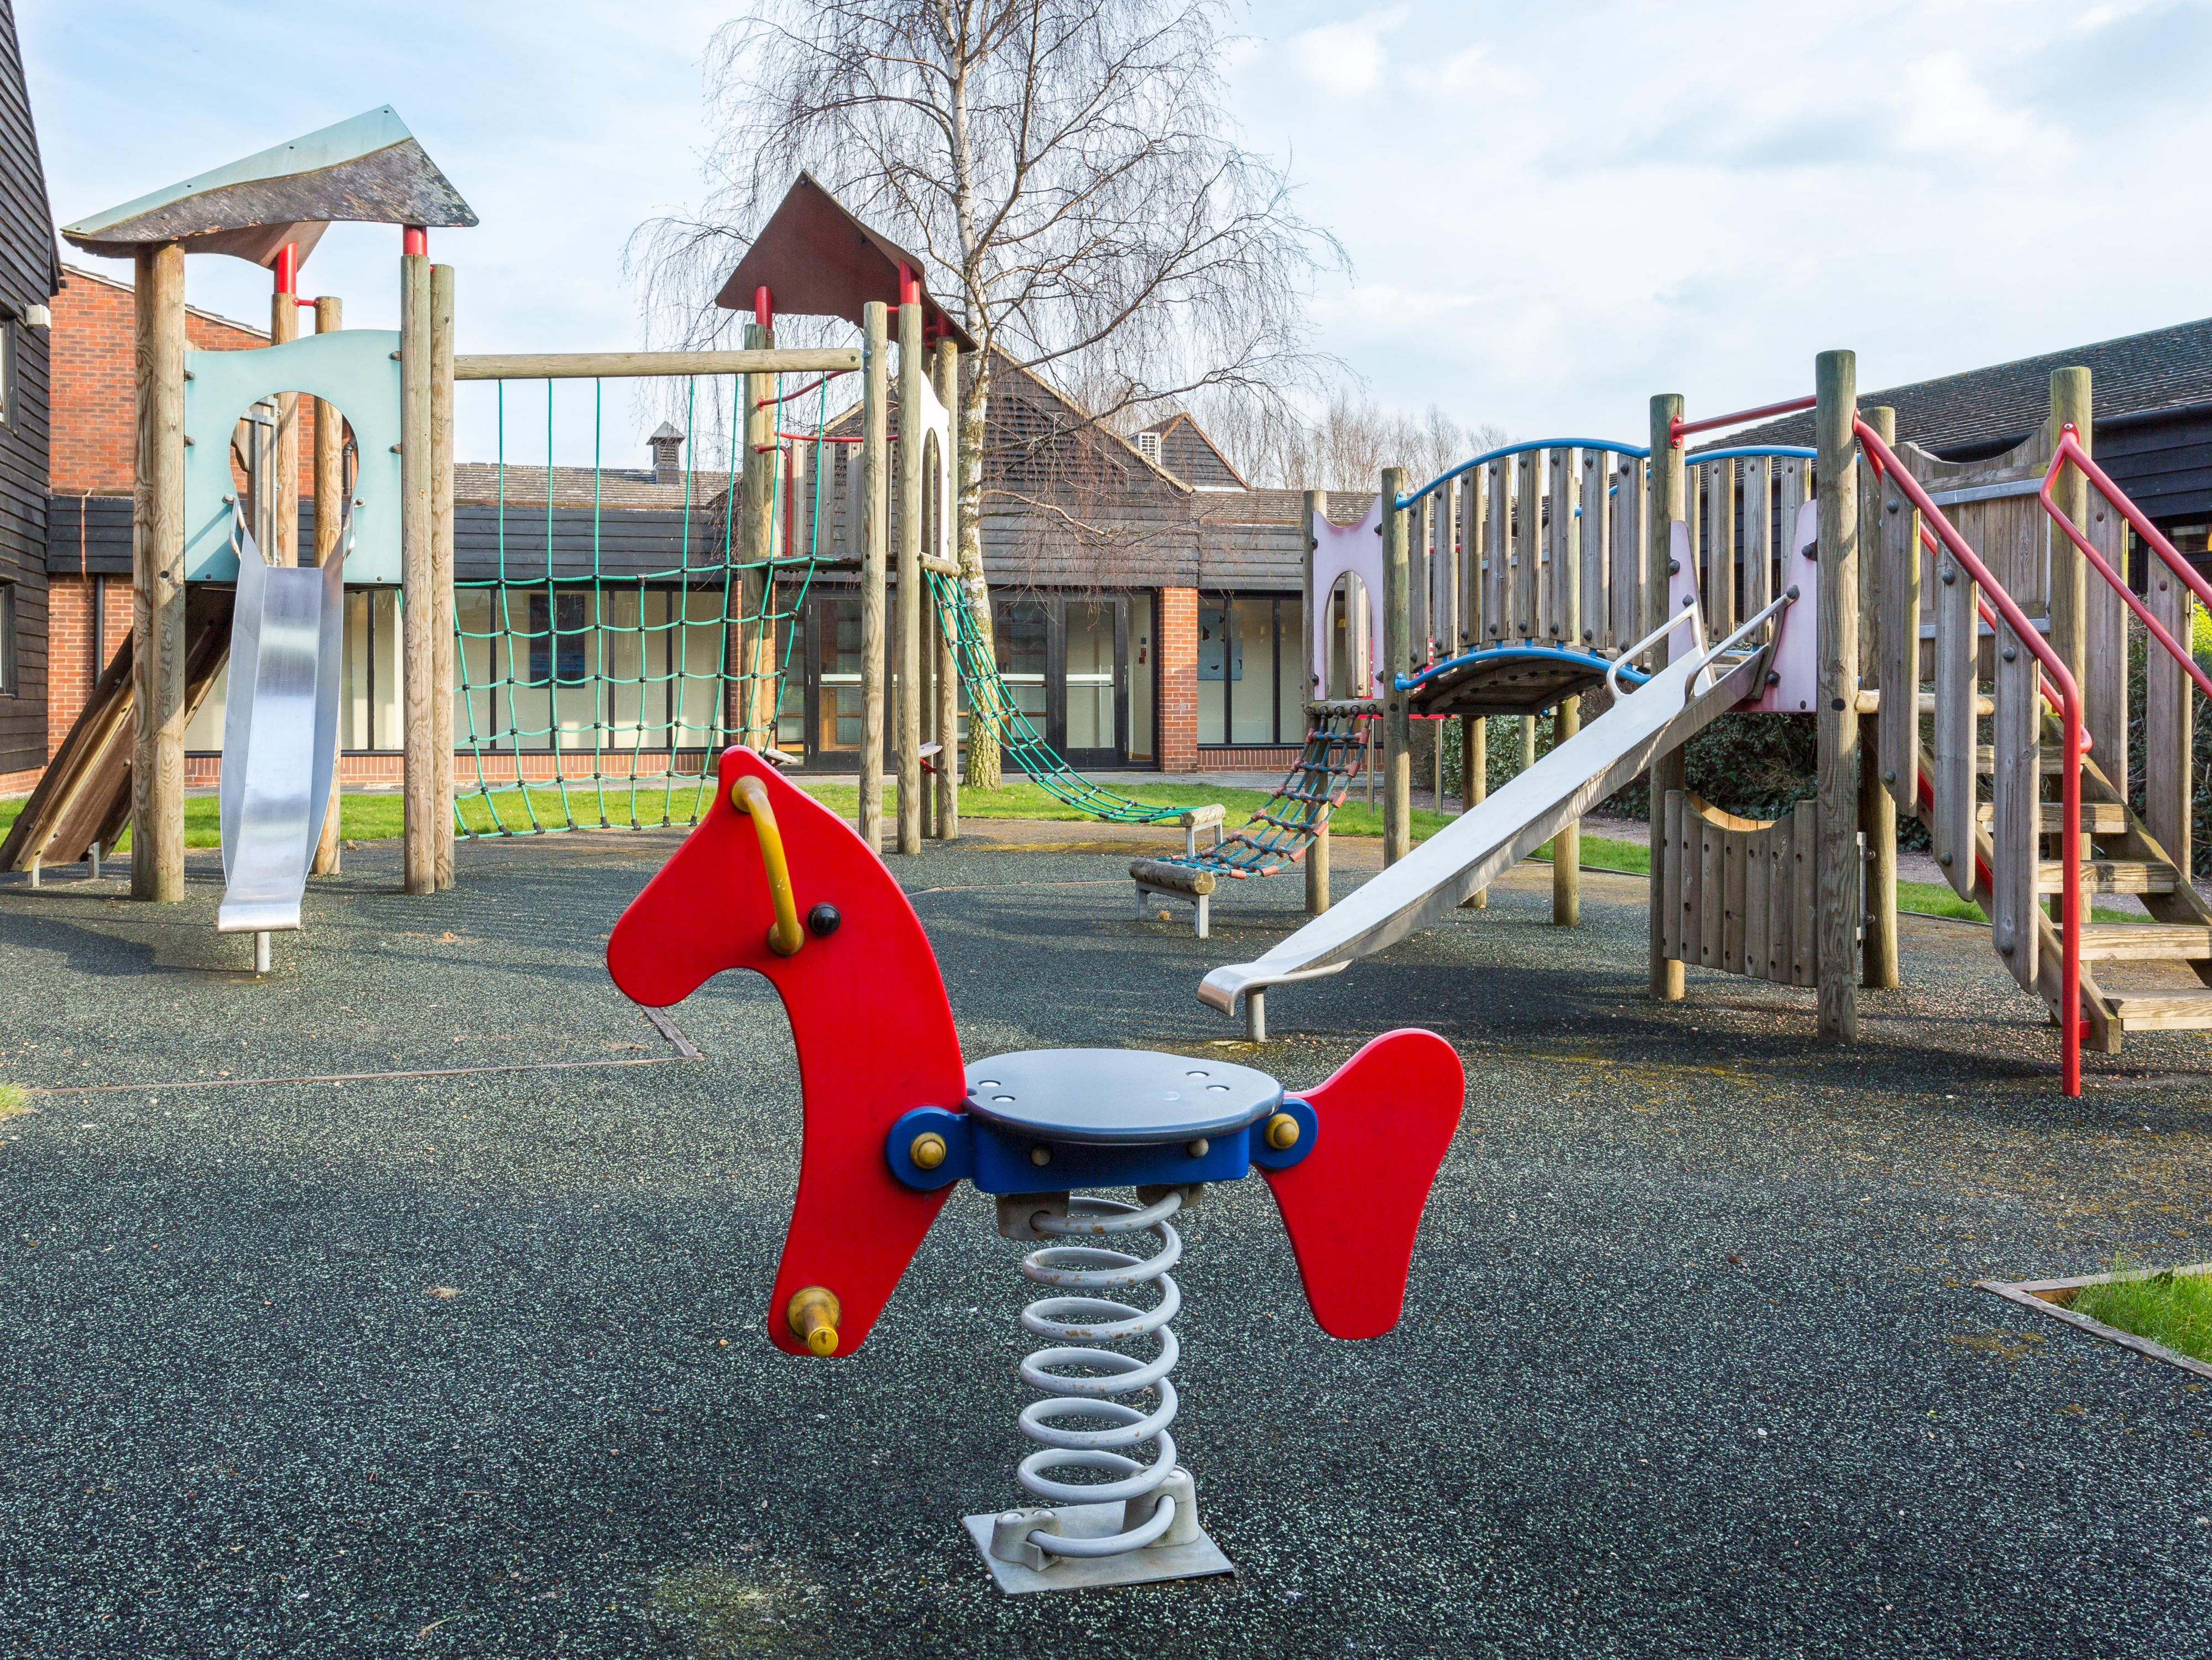 Kids and parents alike will love our spacious Play Area